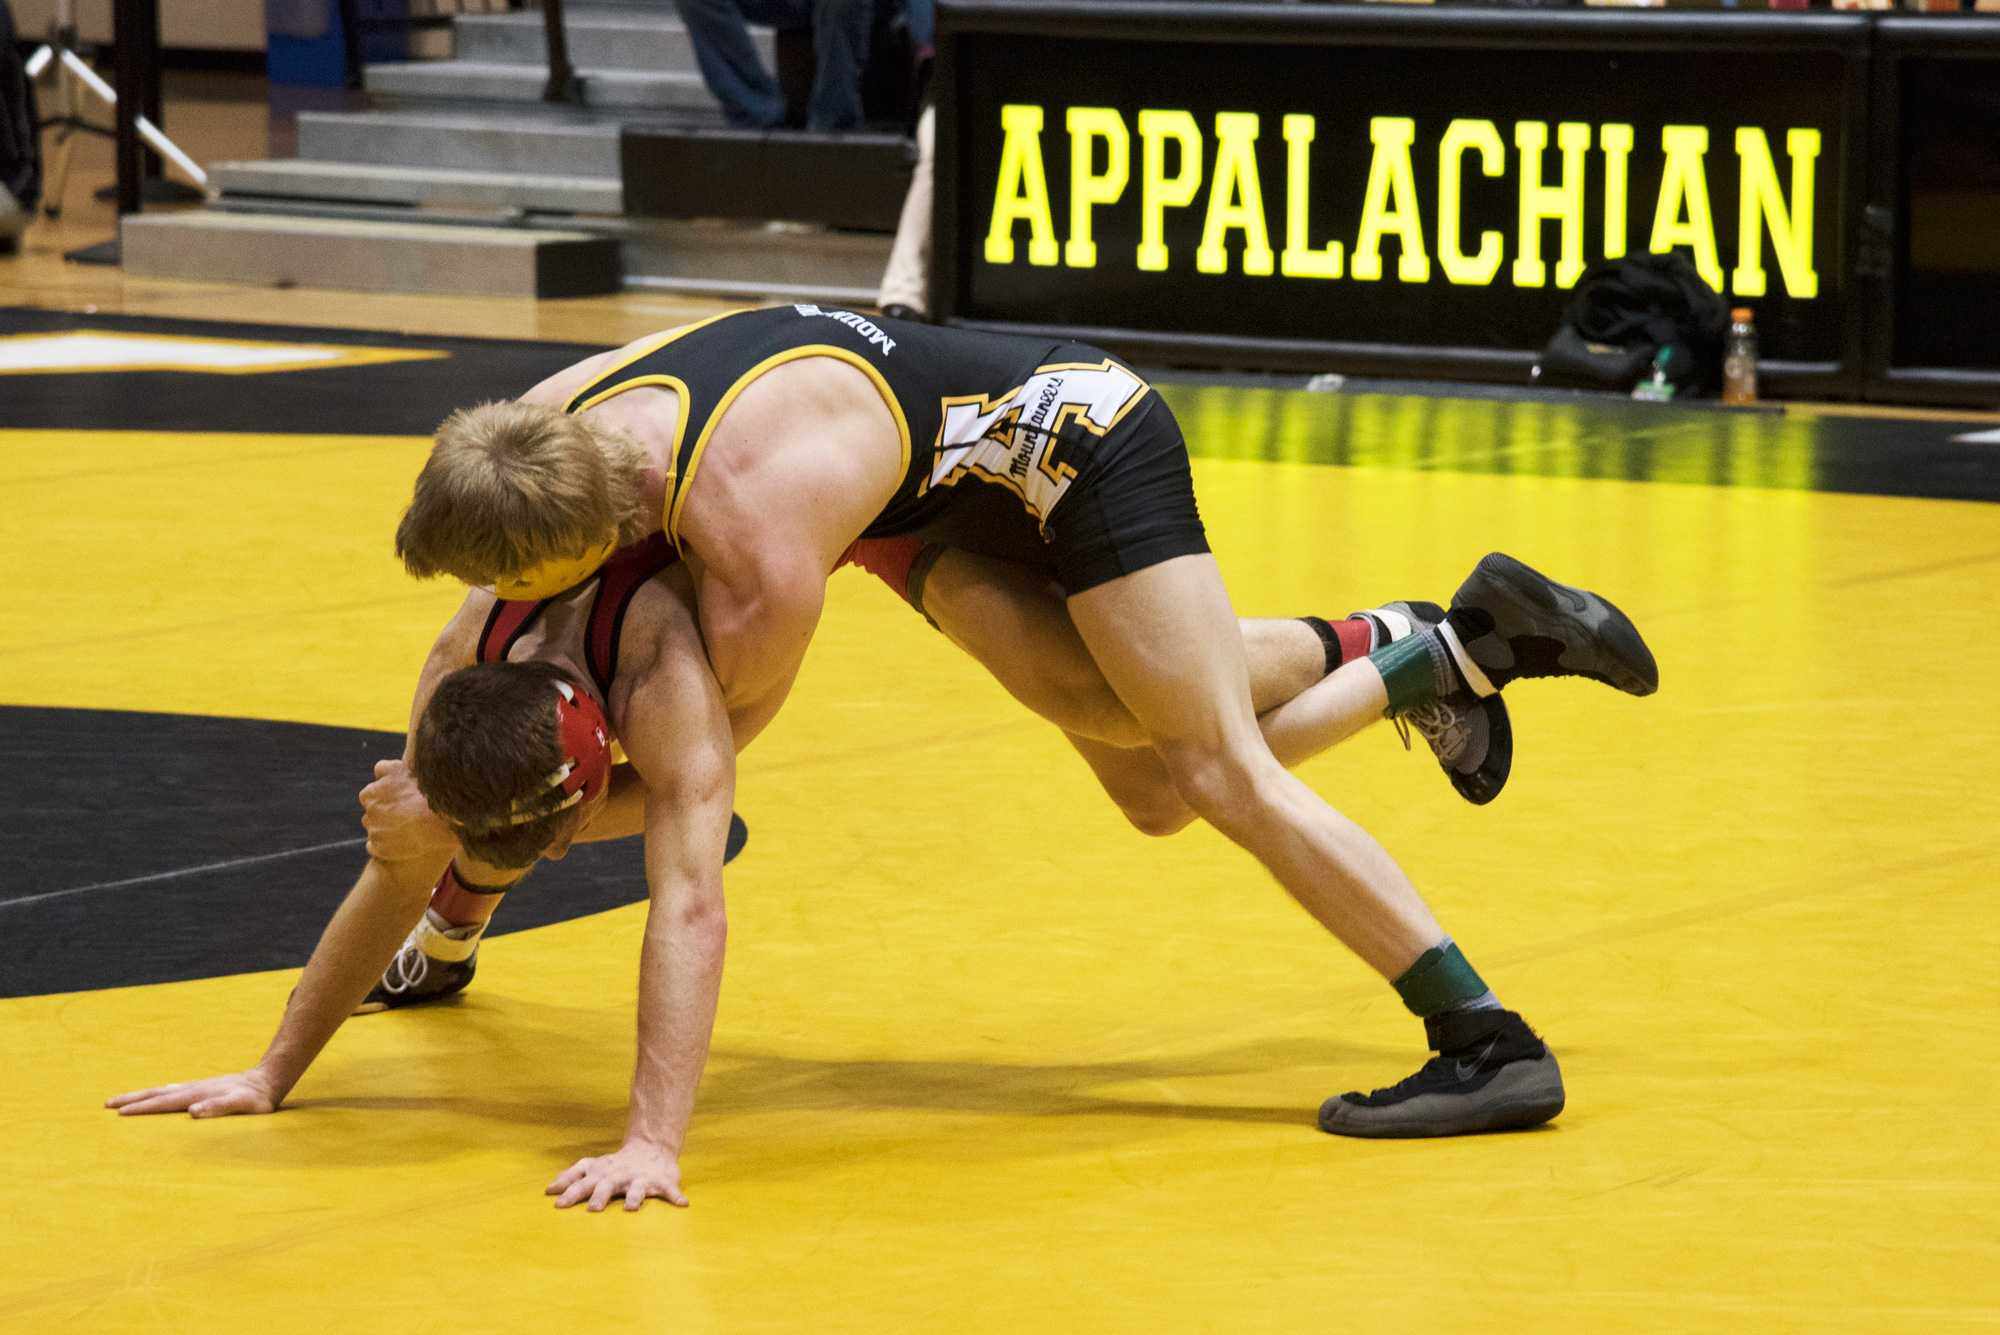 Freshman, Colby Smith during his match against Gardner-Webb opponent on January 24th. Photo Credit: Halle Keighton, Photo Editor